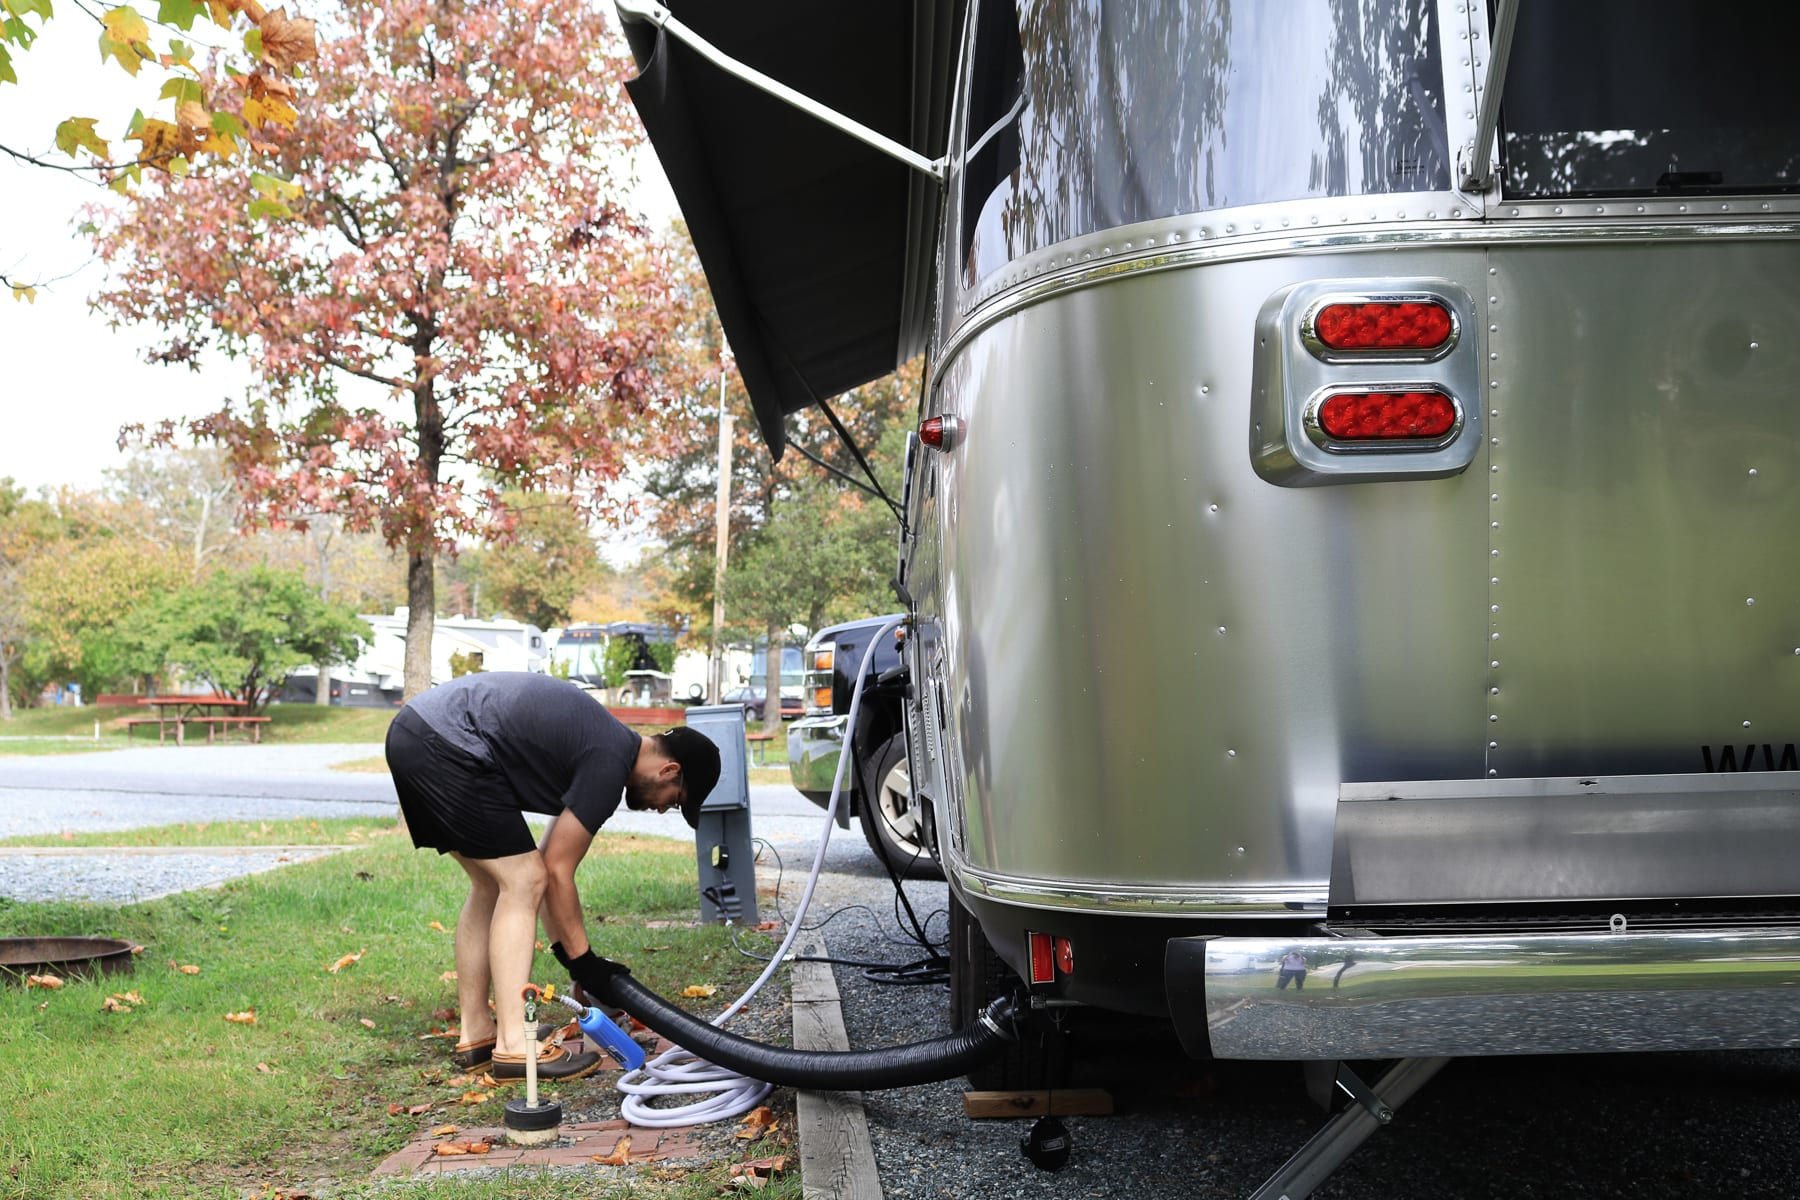 10-MD-journey-airstream-setup13.jpg